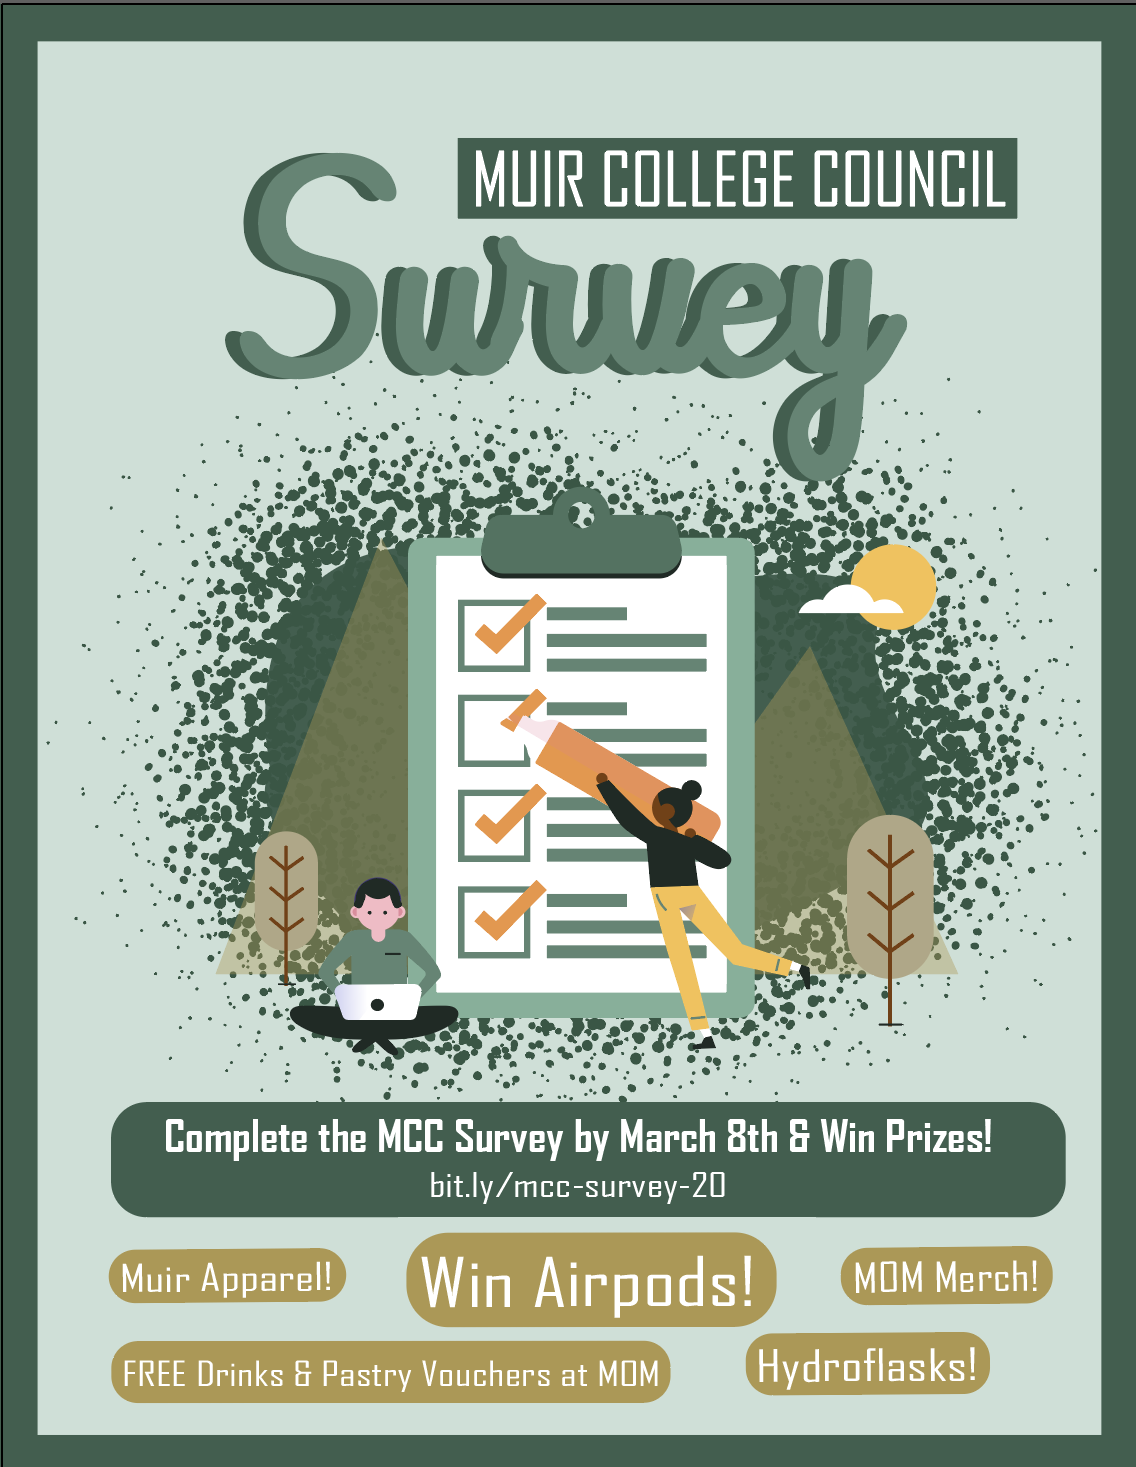 Take the MCC Survey to provide feedback to us and win big prizes! Fill it out at bit.ly/mcc-survey-20